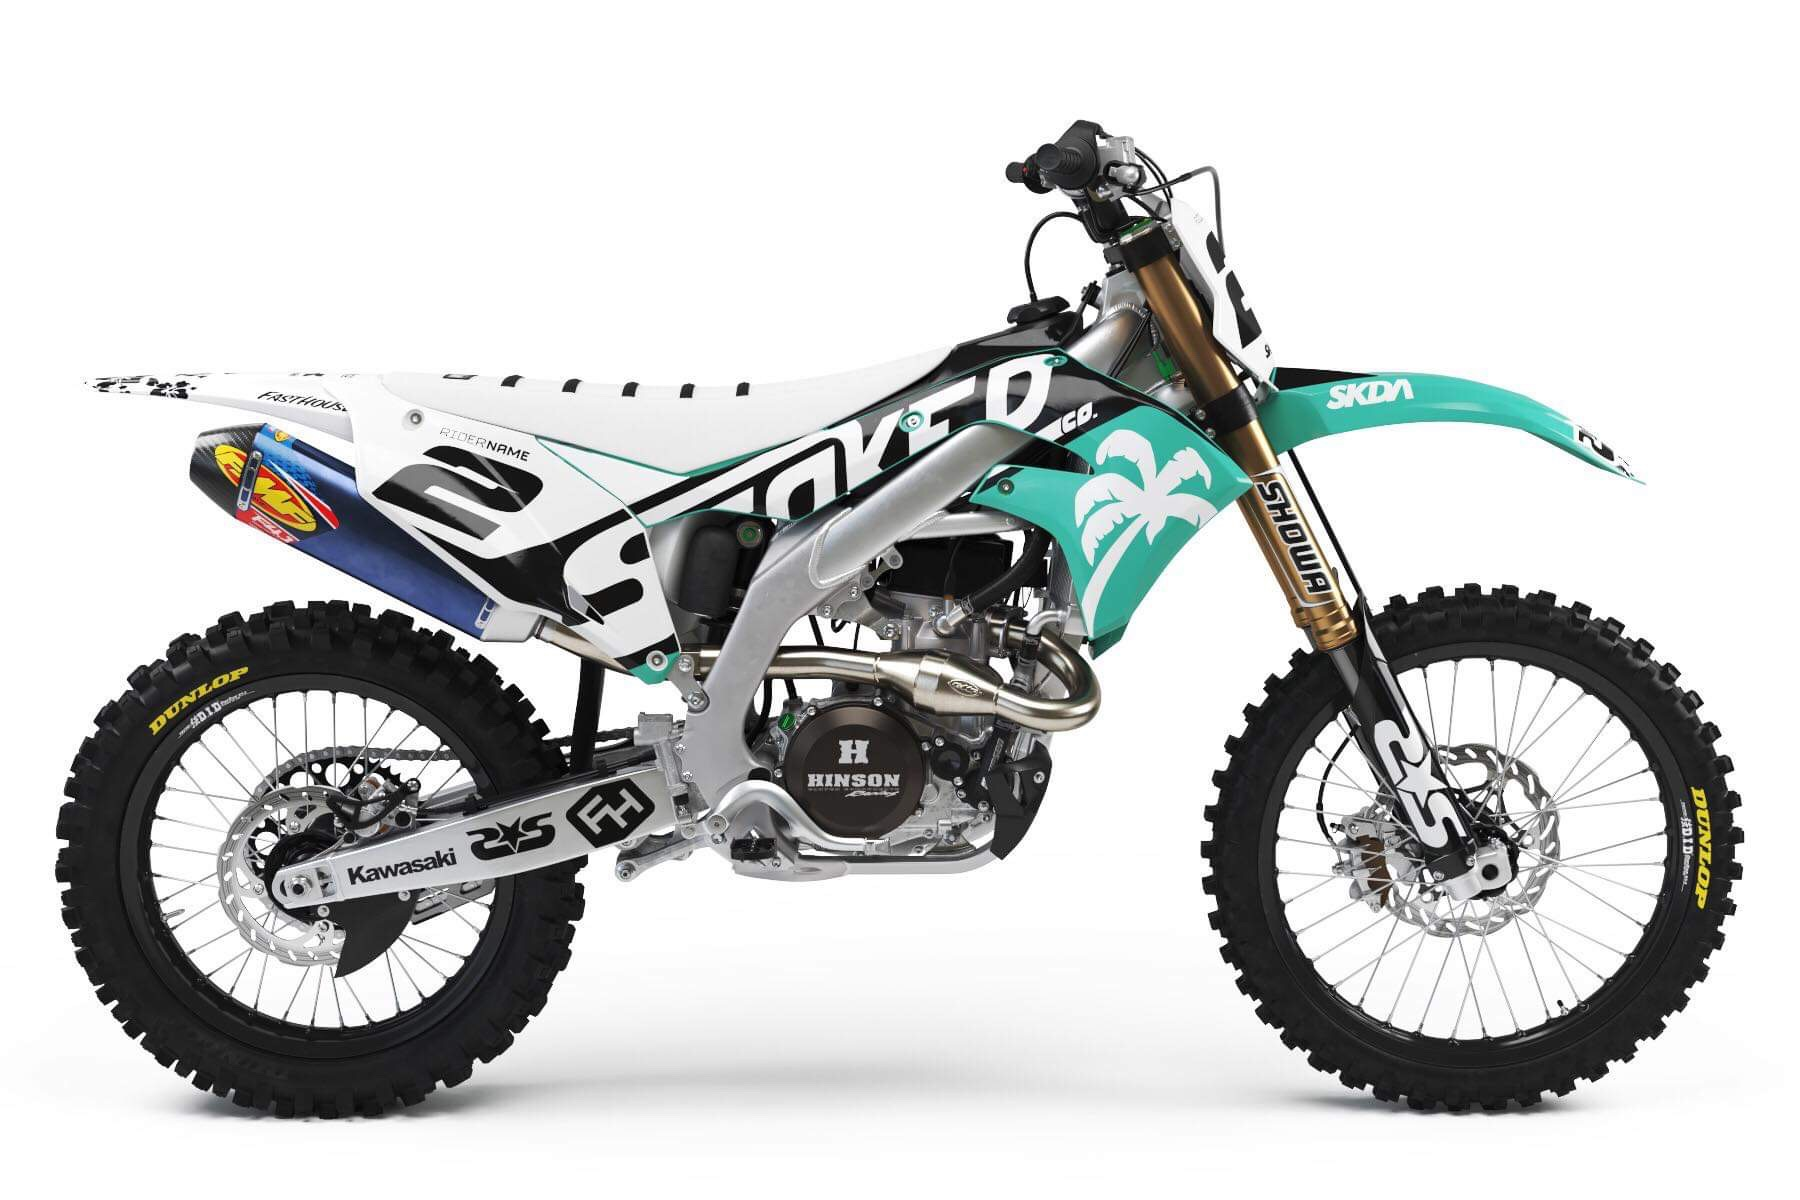 kawasaki Teal full graphics kit -